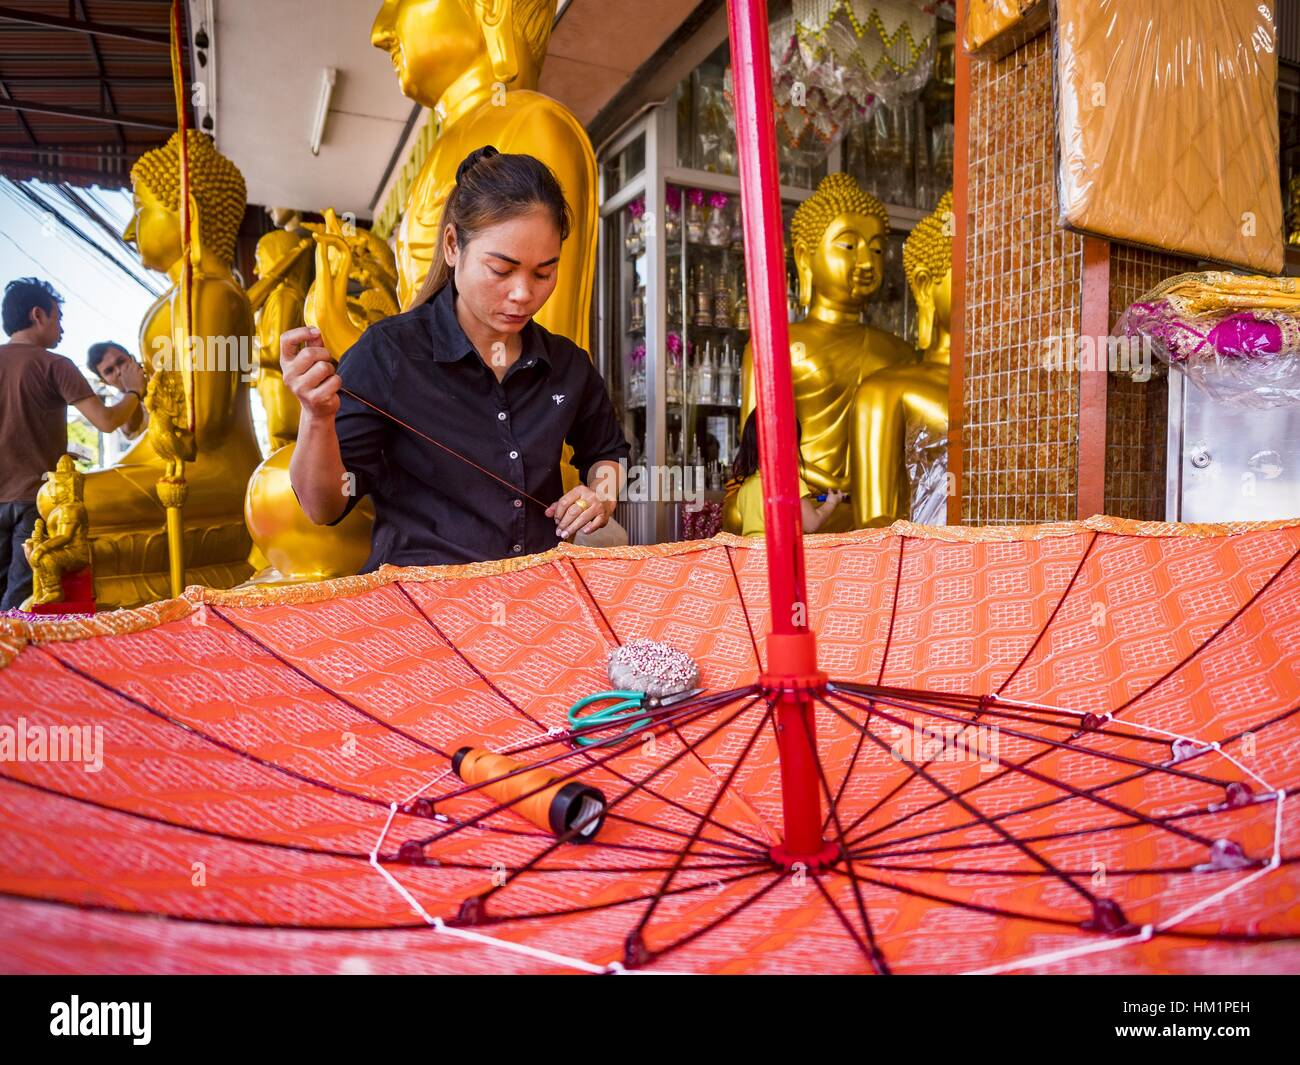 Bangkok, Thailand. 1st Feb, 2017. A woman works on a large traditional parasol at a shop that makes and sells Buddhist - Stock Image